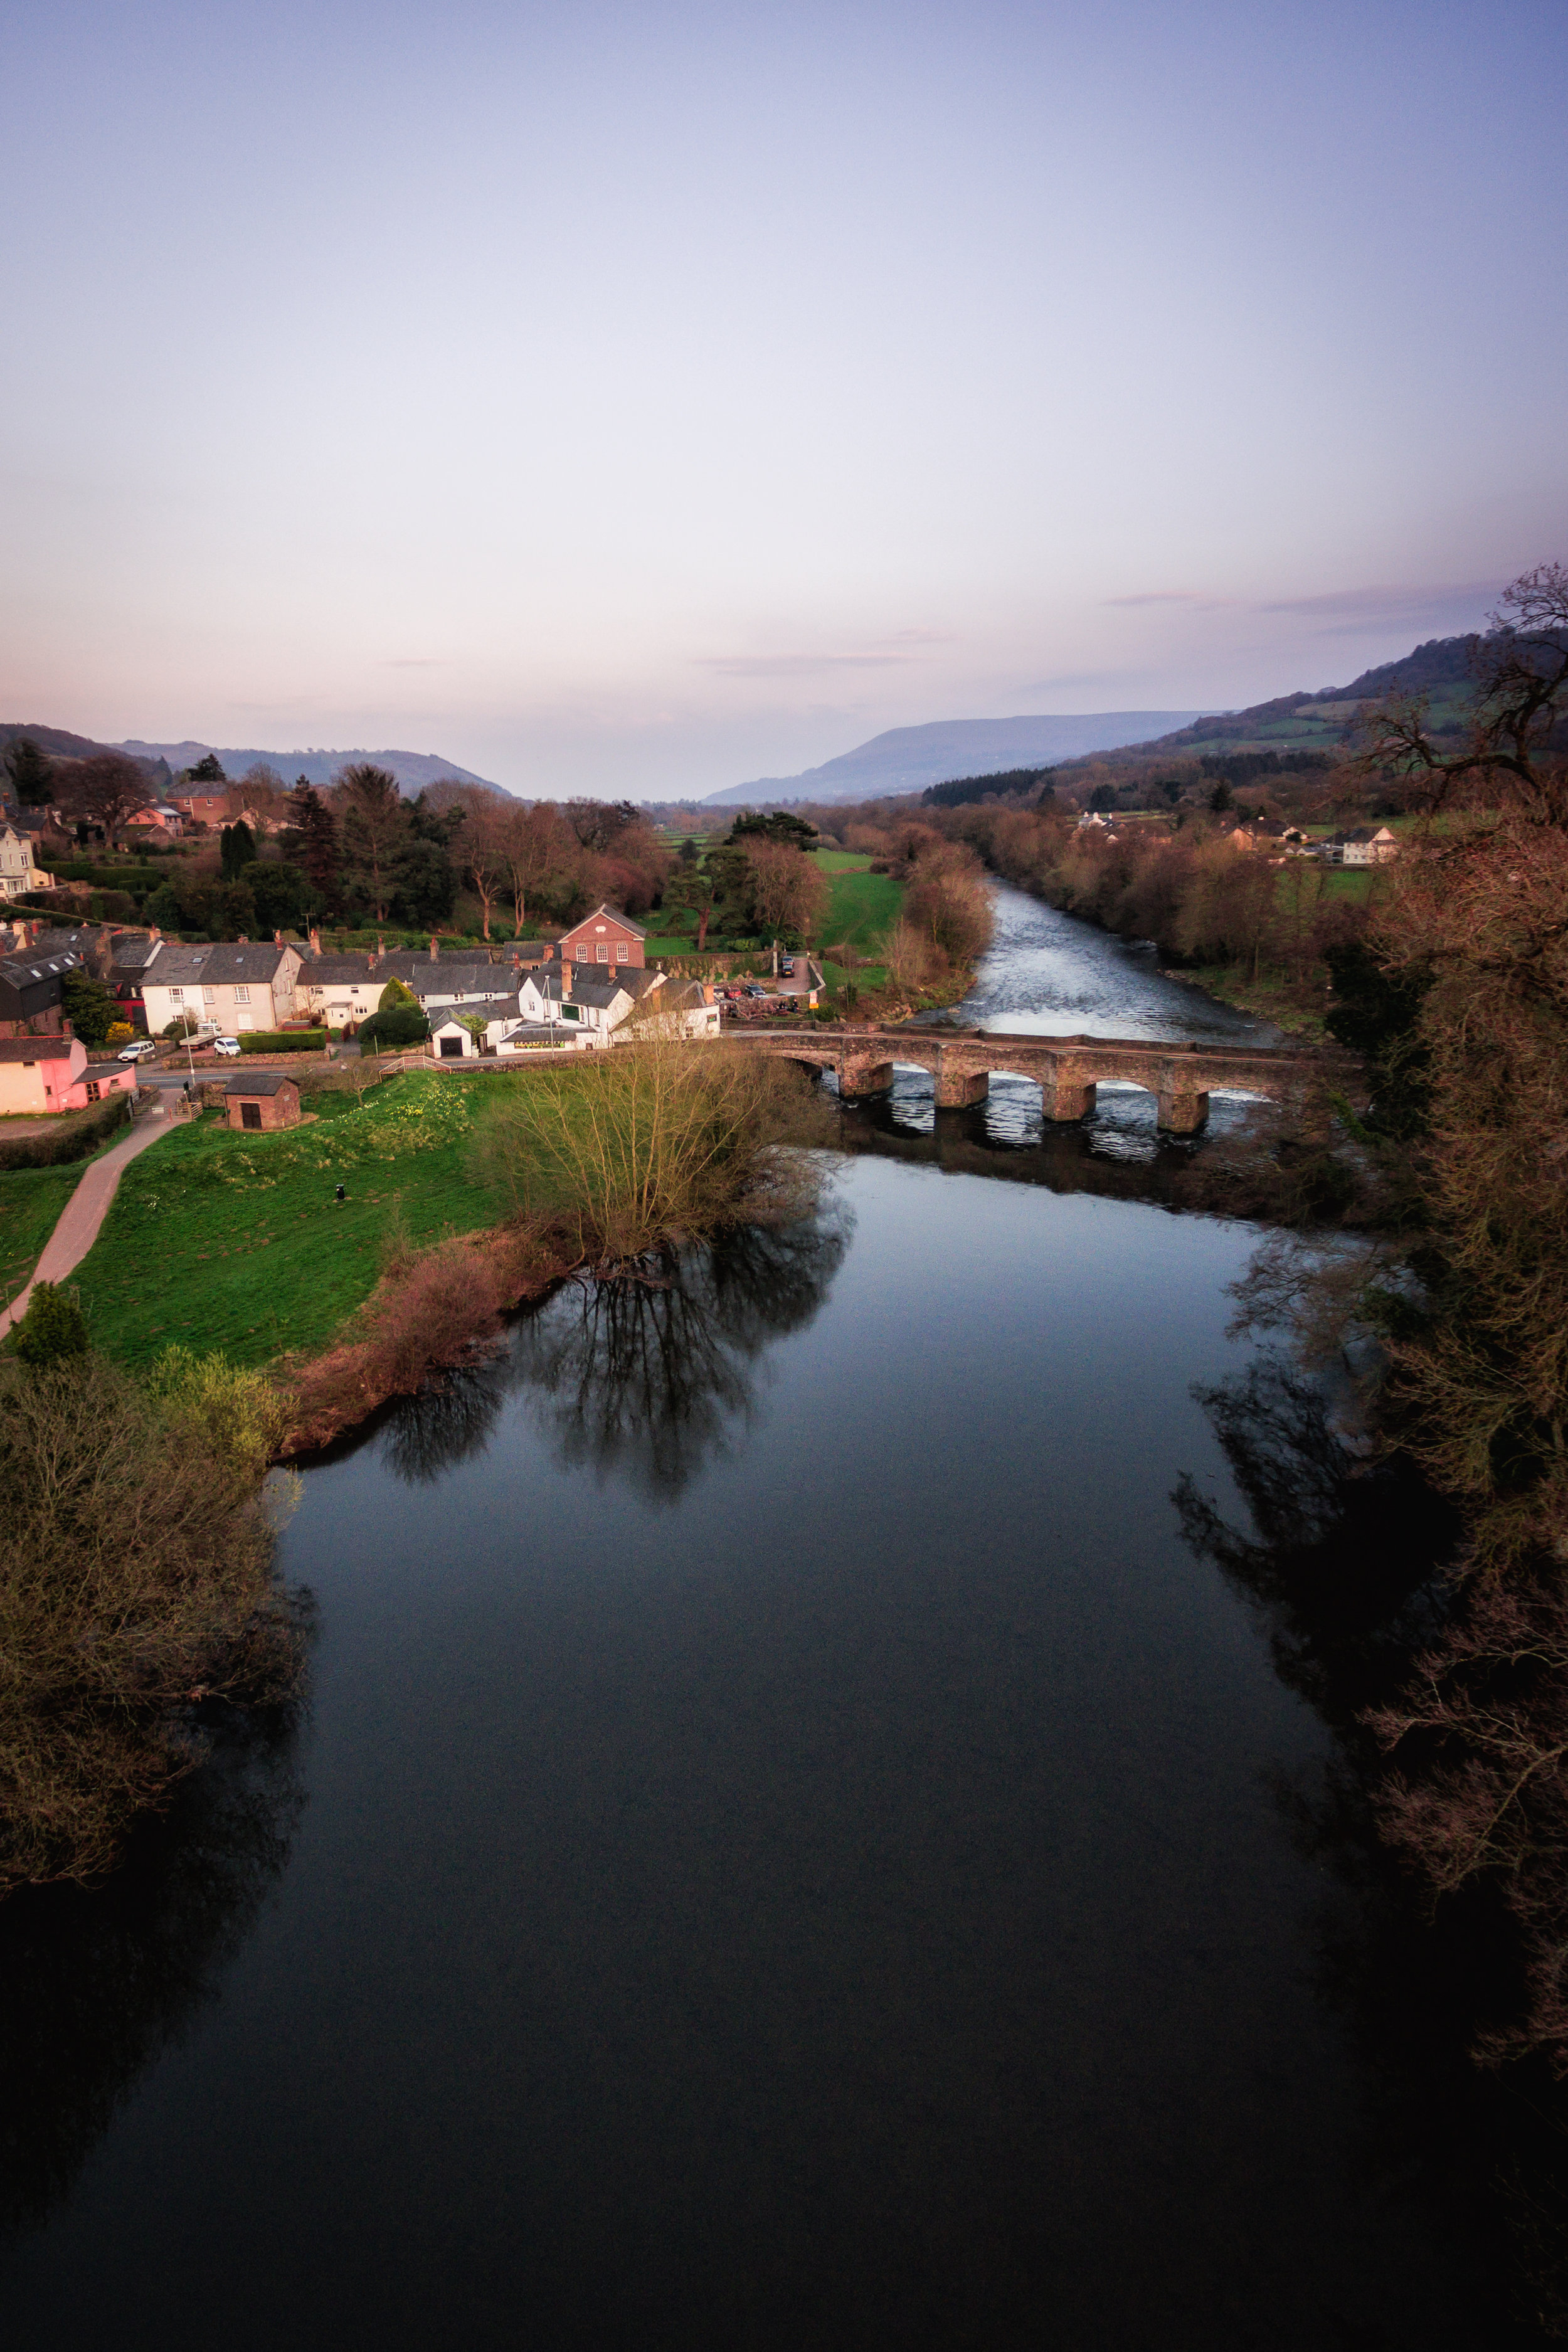 An Aerial view of Crickhowell and the River Usk